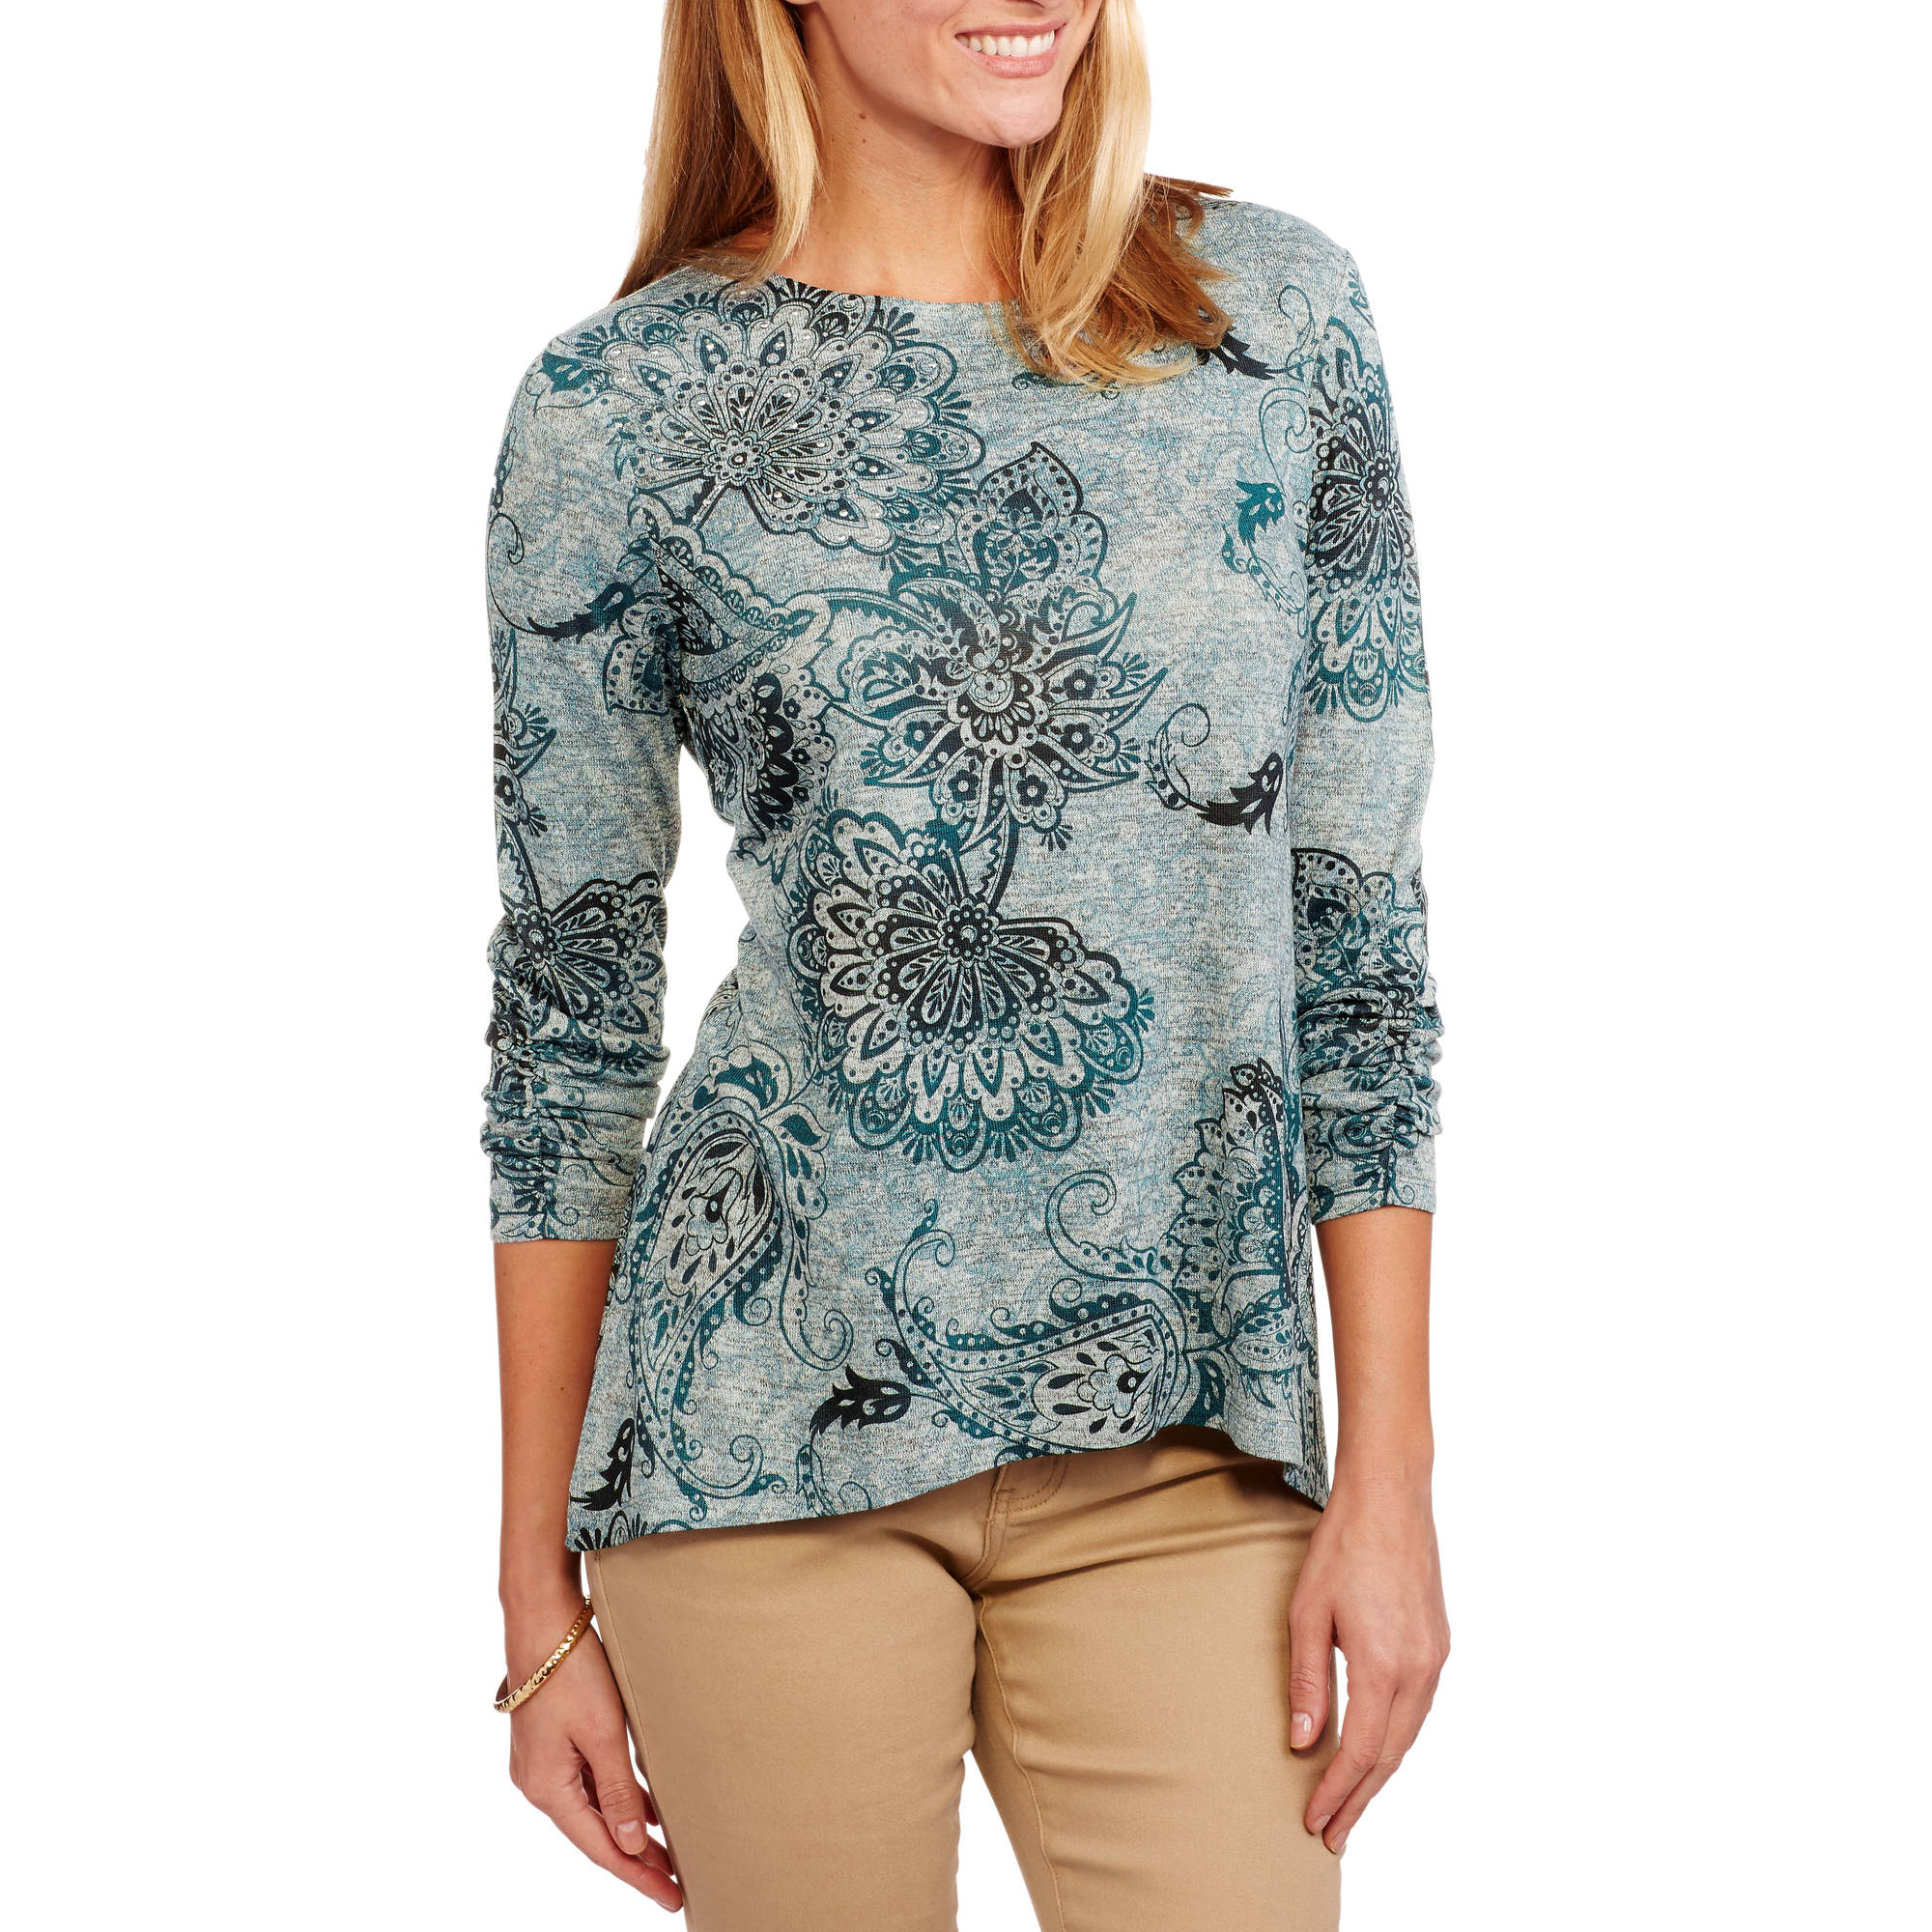 b6cc005bbee3 White Stag - Women's Relaxed Fit Long Sleeve Scoopneck Printed T-Shirt -  Walmart.com